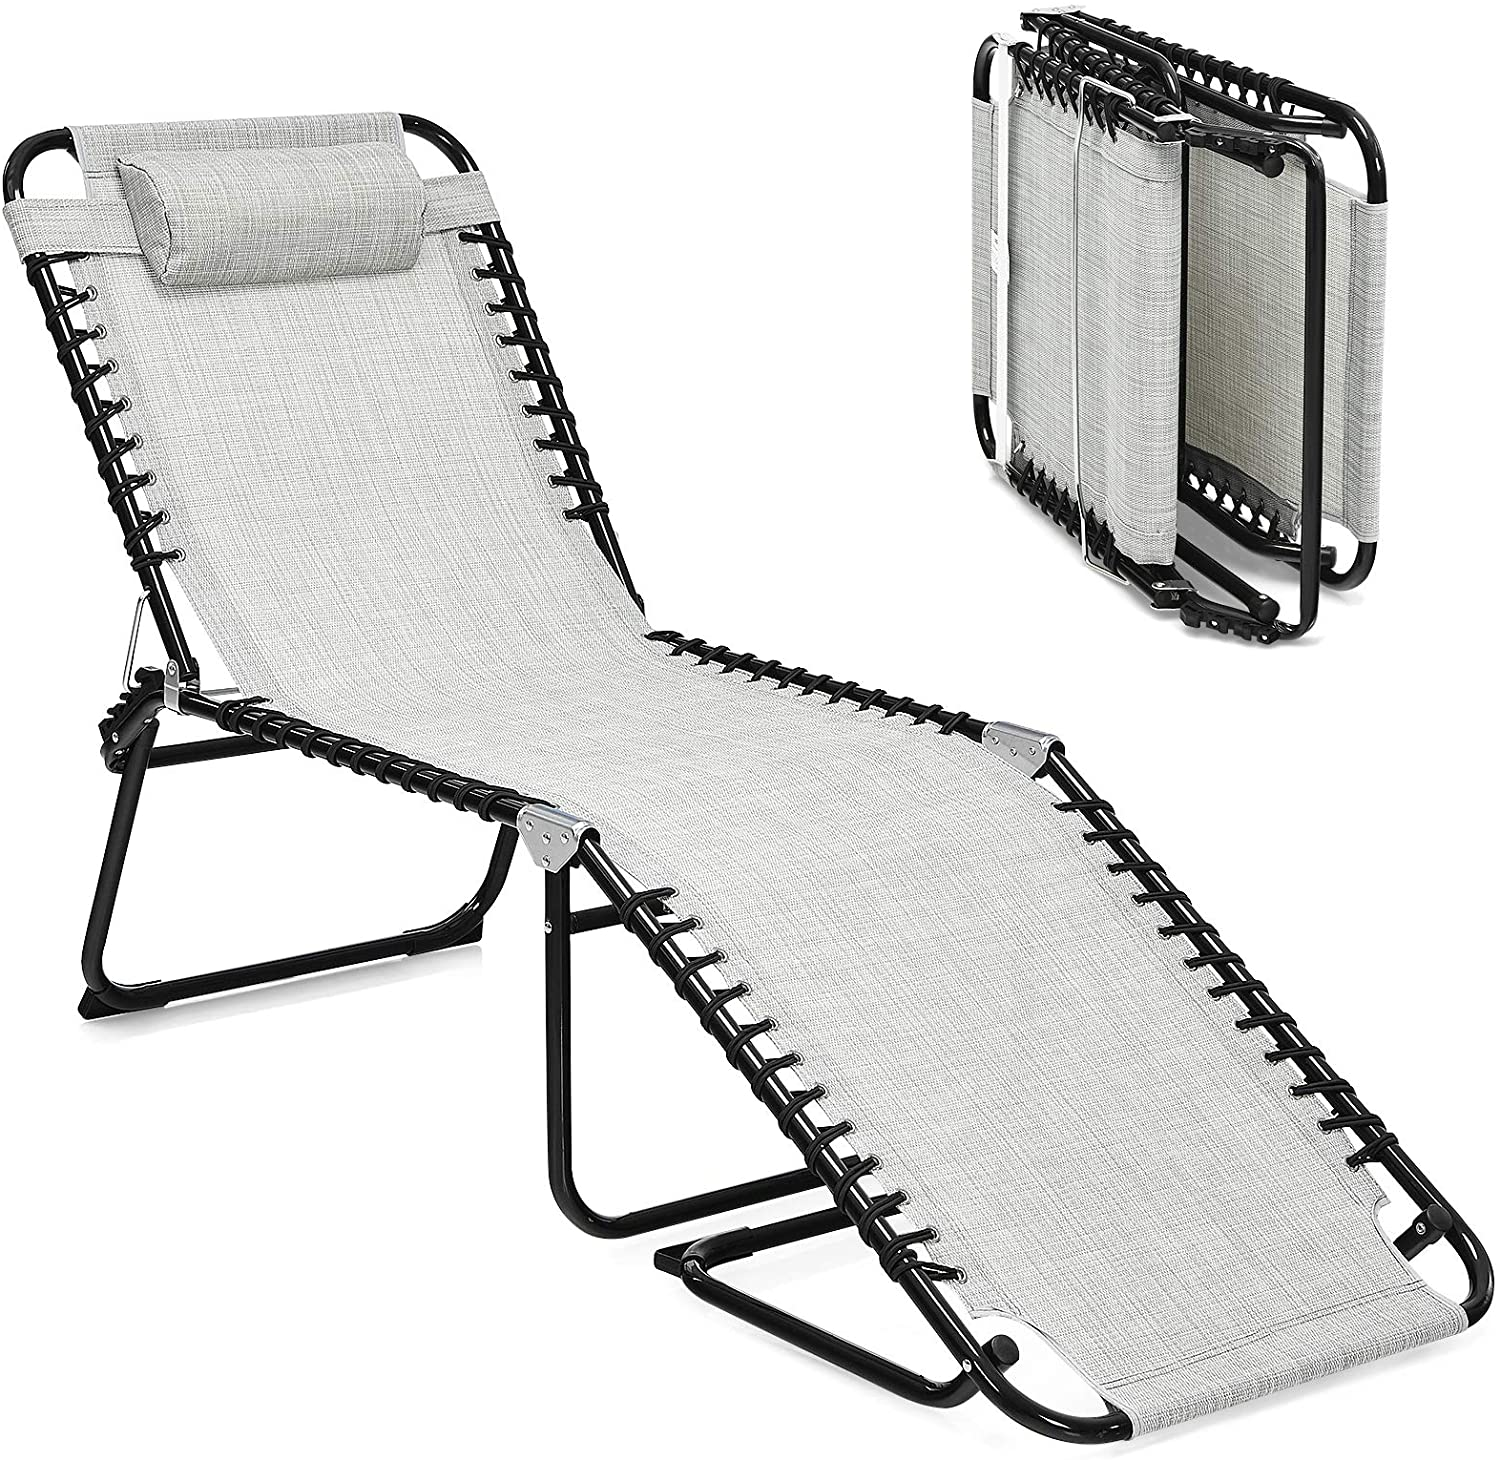 GYMAX Adjustable Chaise Lounge service Patio Folding New popularity Reclin Lightweight